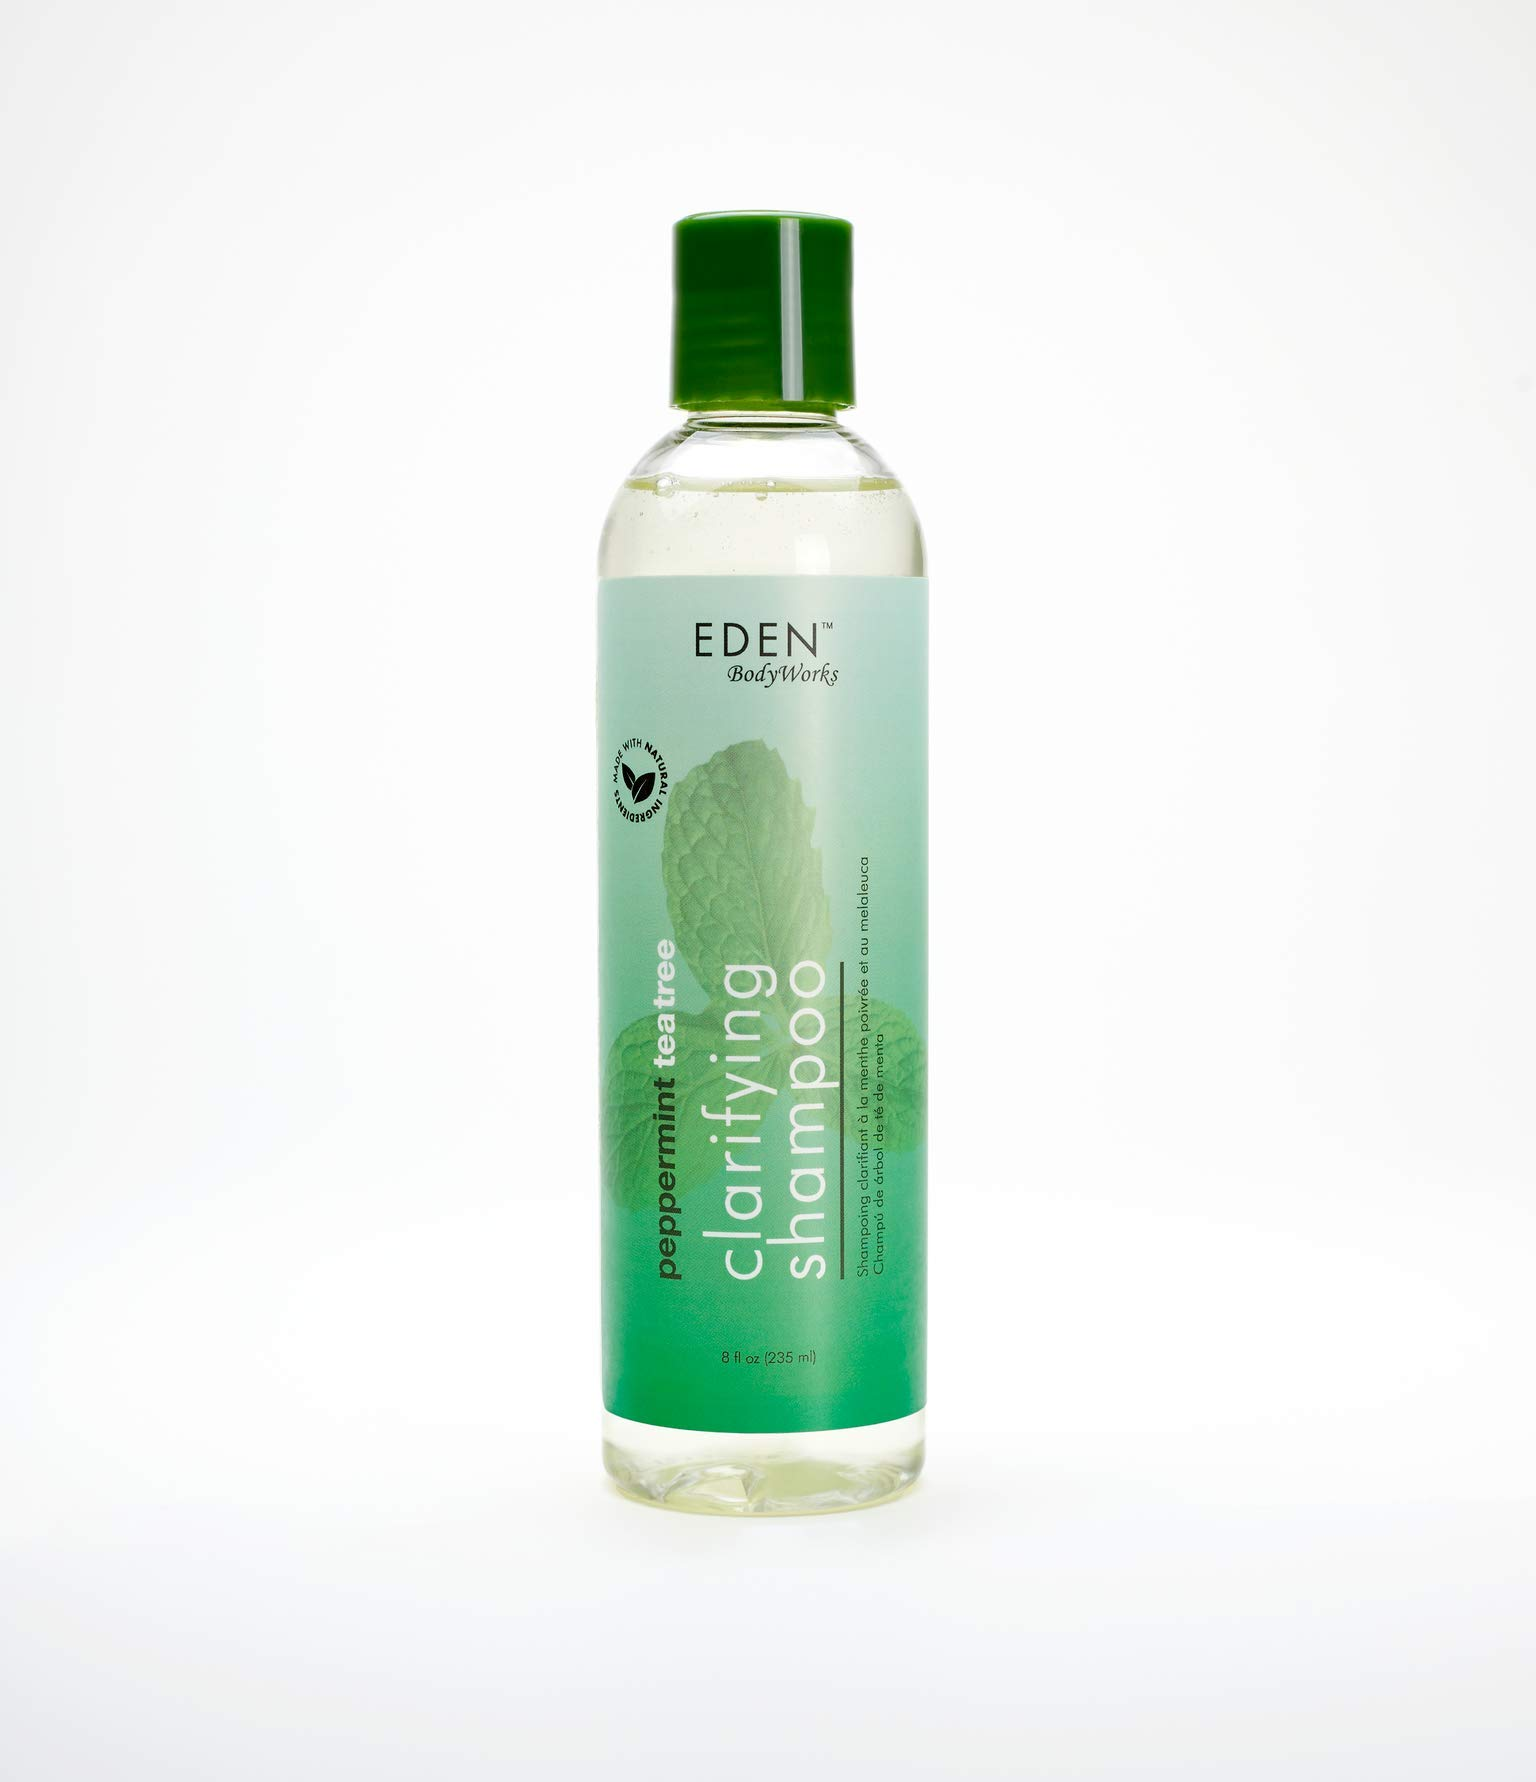 EDEN BodyWorks Peppermint Tea Tree Clear Clarifying Shampoo | 8 oz | Refresh Scalp, Remove Build Up, Prevent Dandruff - Packaging May Vary